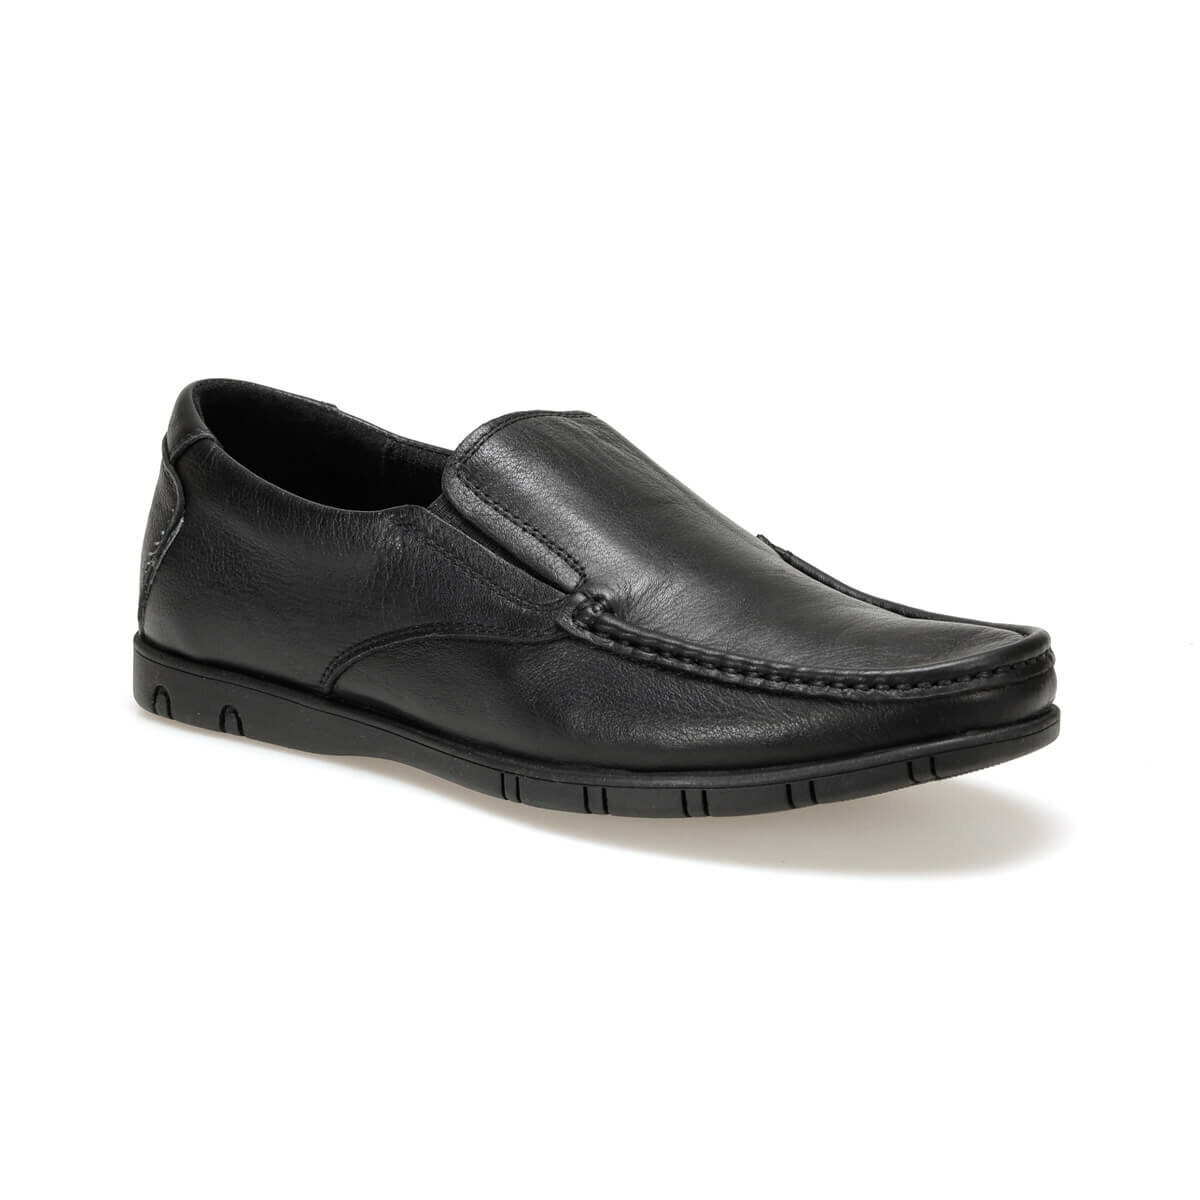 FLO D-04169-Y C 1494 Black Men 'S Classic Shoes Flogart